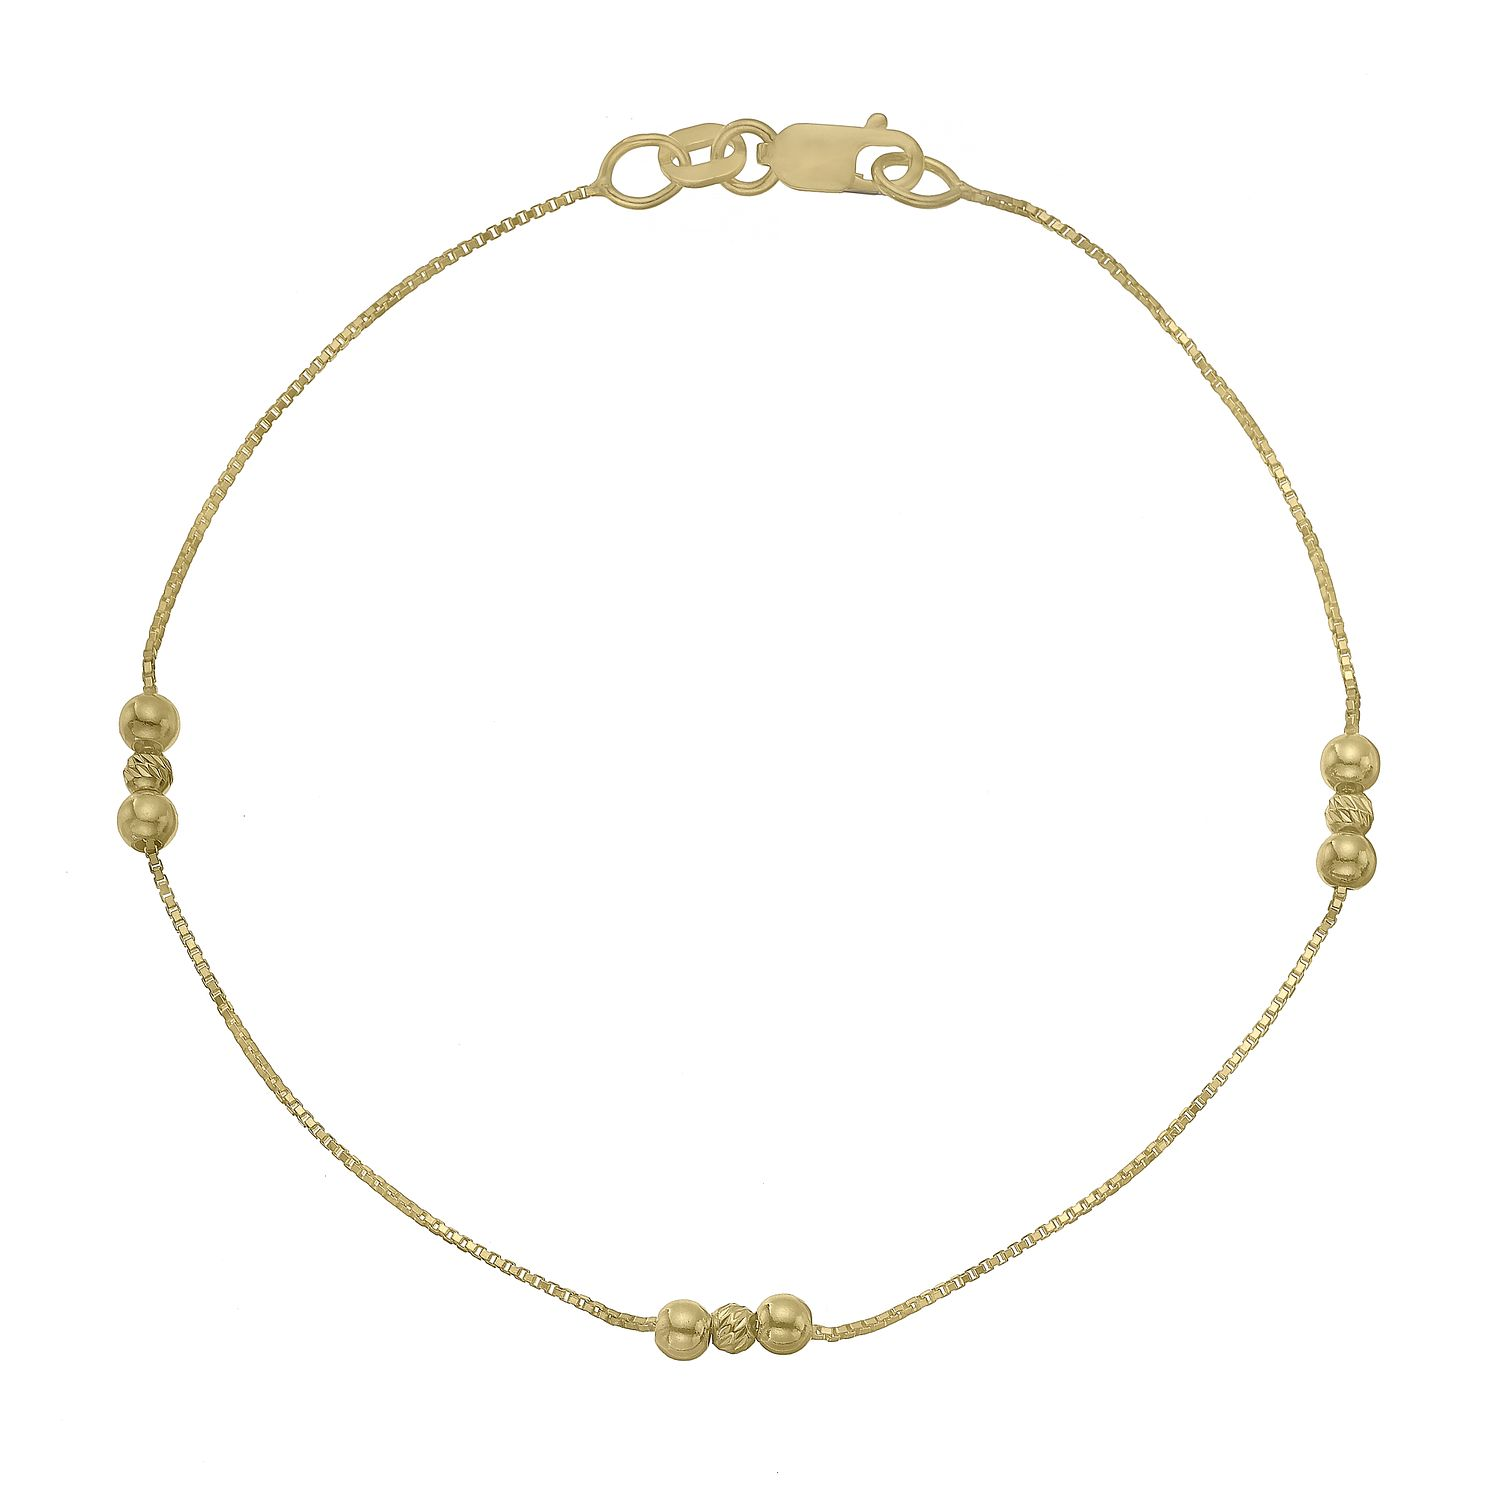 9ct Yellow Gold Trio Bead Station Chain Bracelet - Product number 4673042